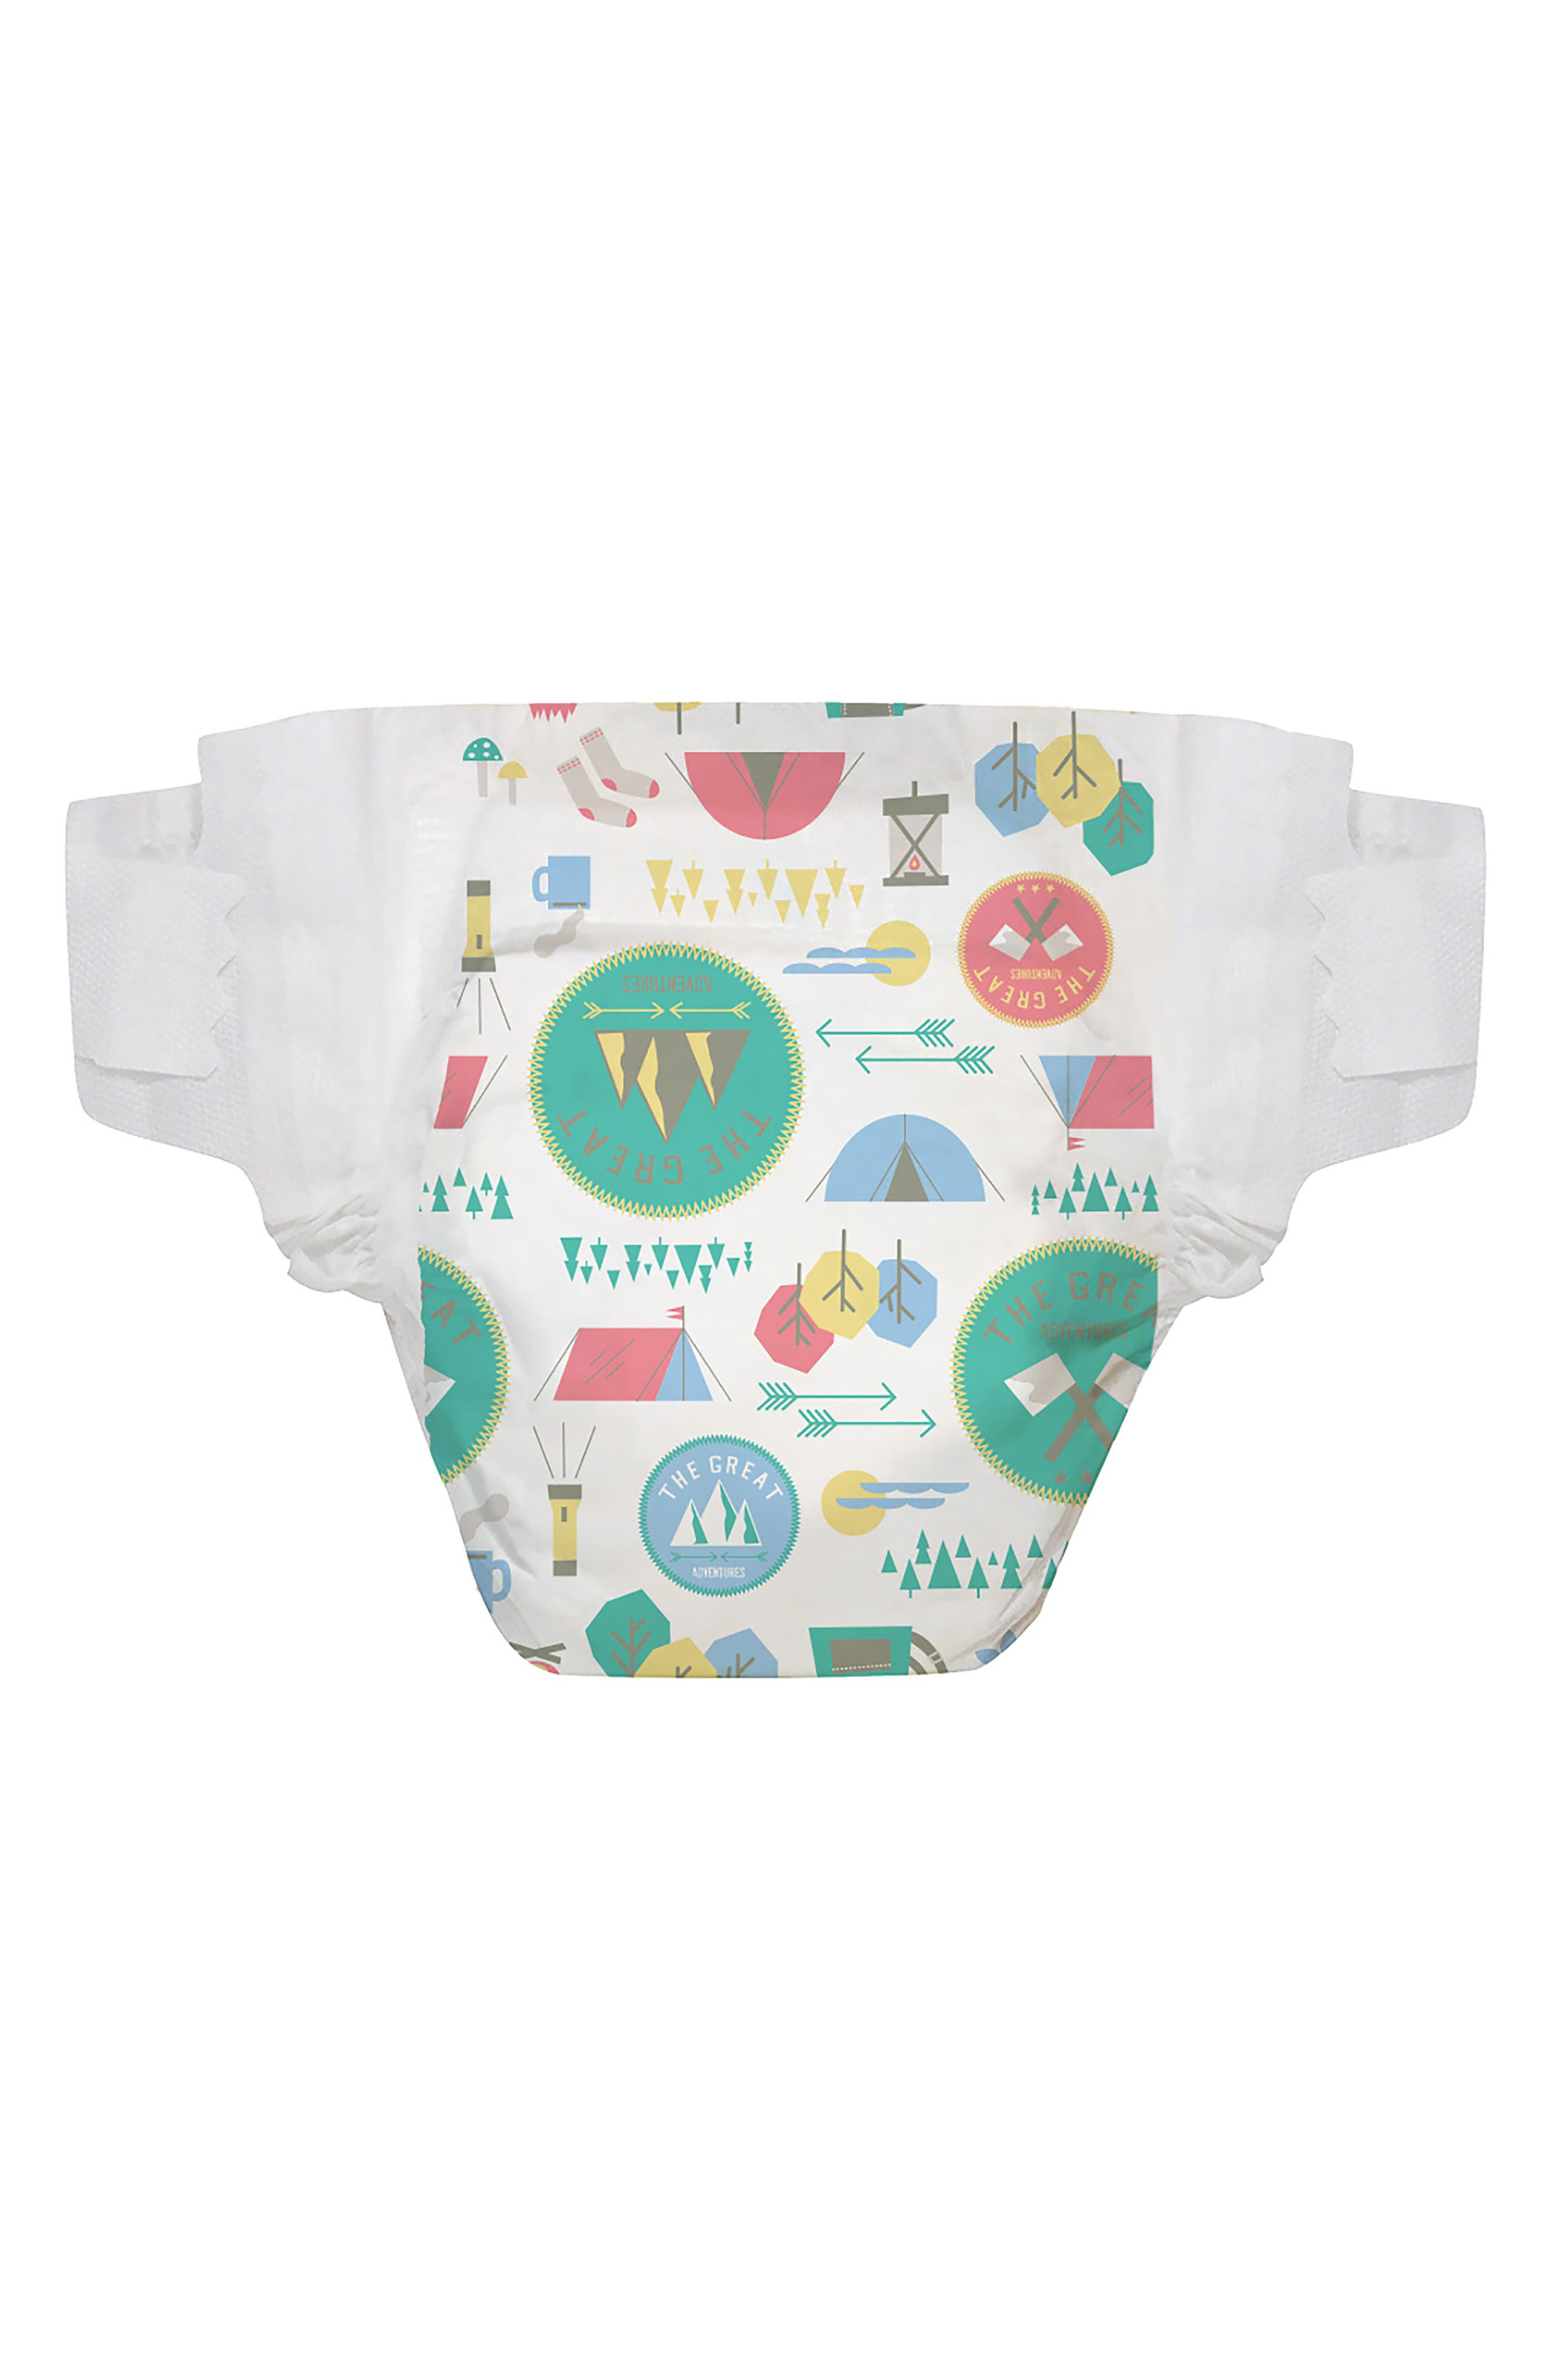 The Honest Company x THE GREAT. The Great Adventure Diapers